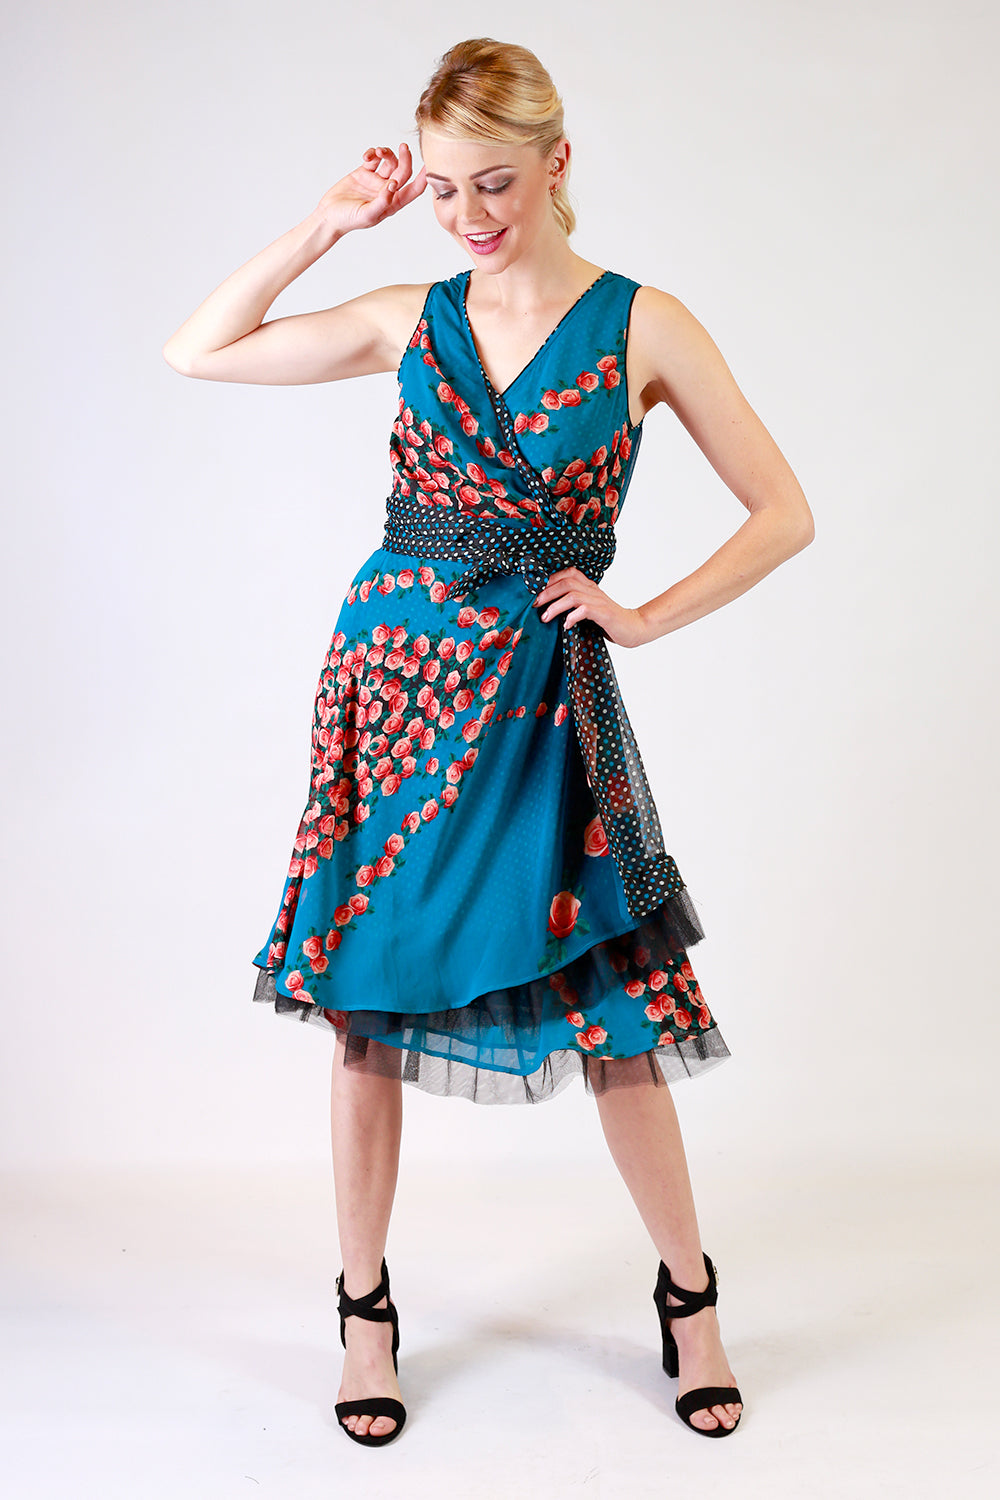 Address Unknown Flipit Wrap Dress | Wrap Around Dresses NZ | Designer Fashion NZ | Floral Dresses NZ